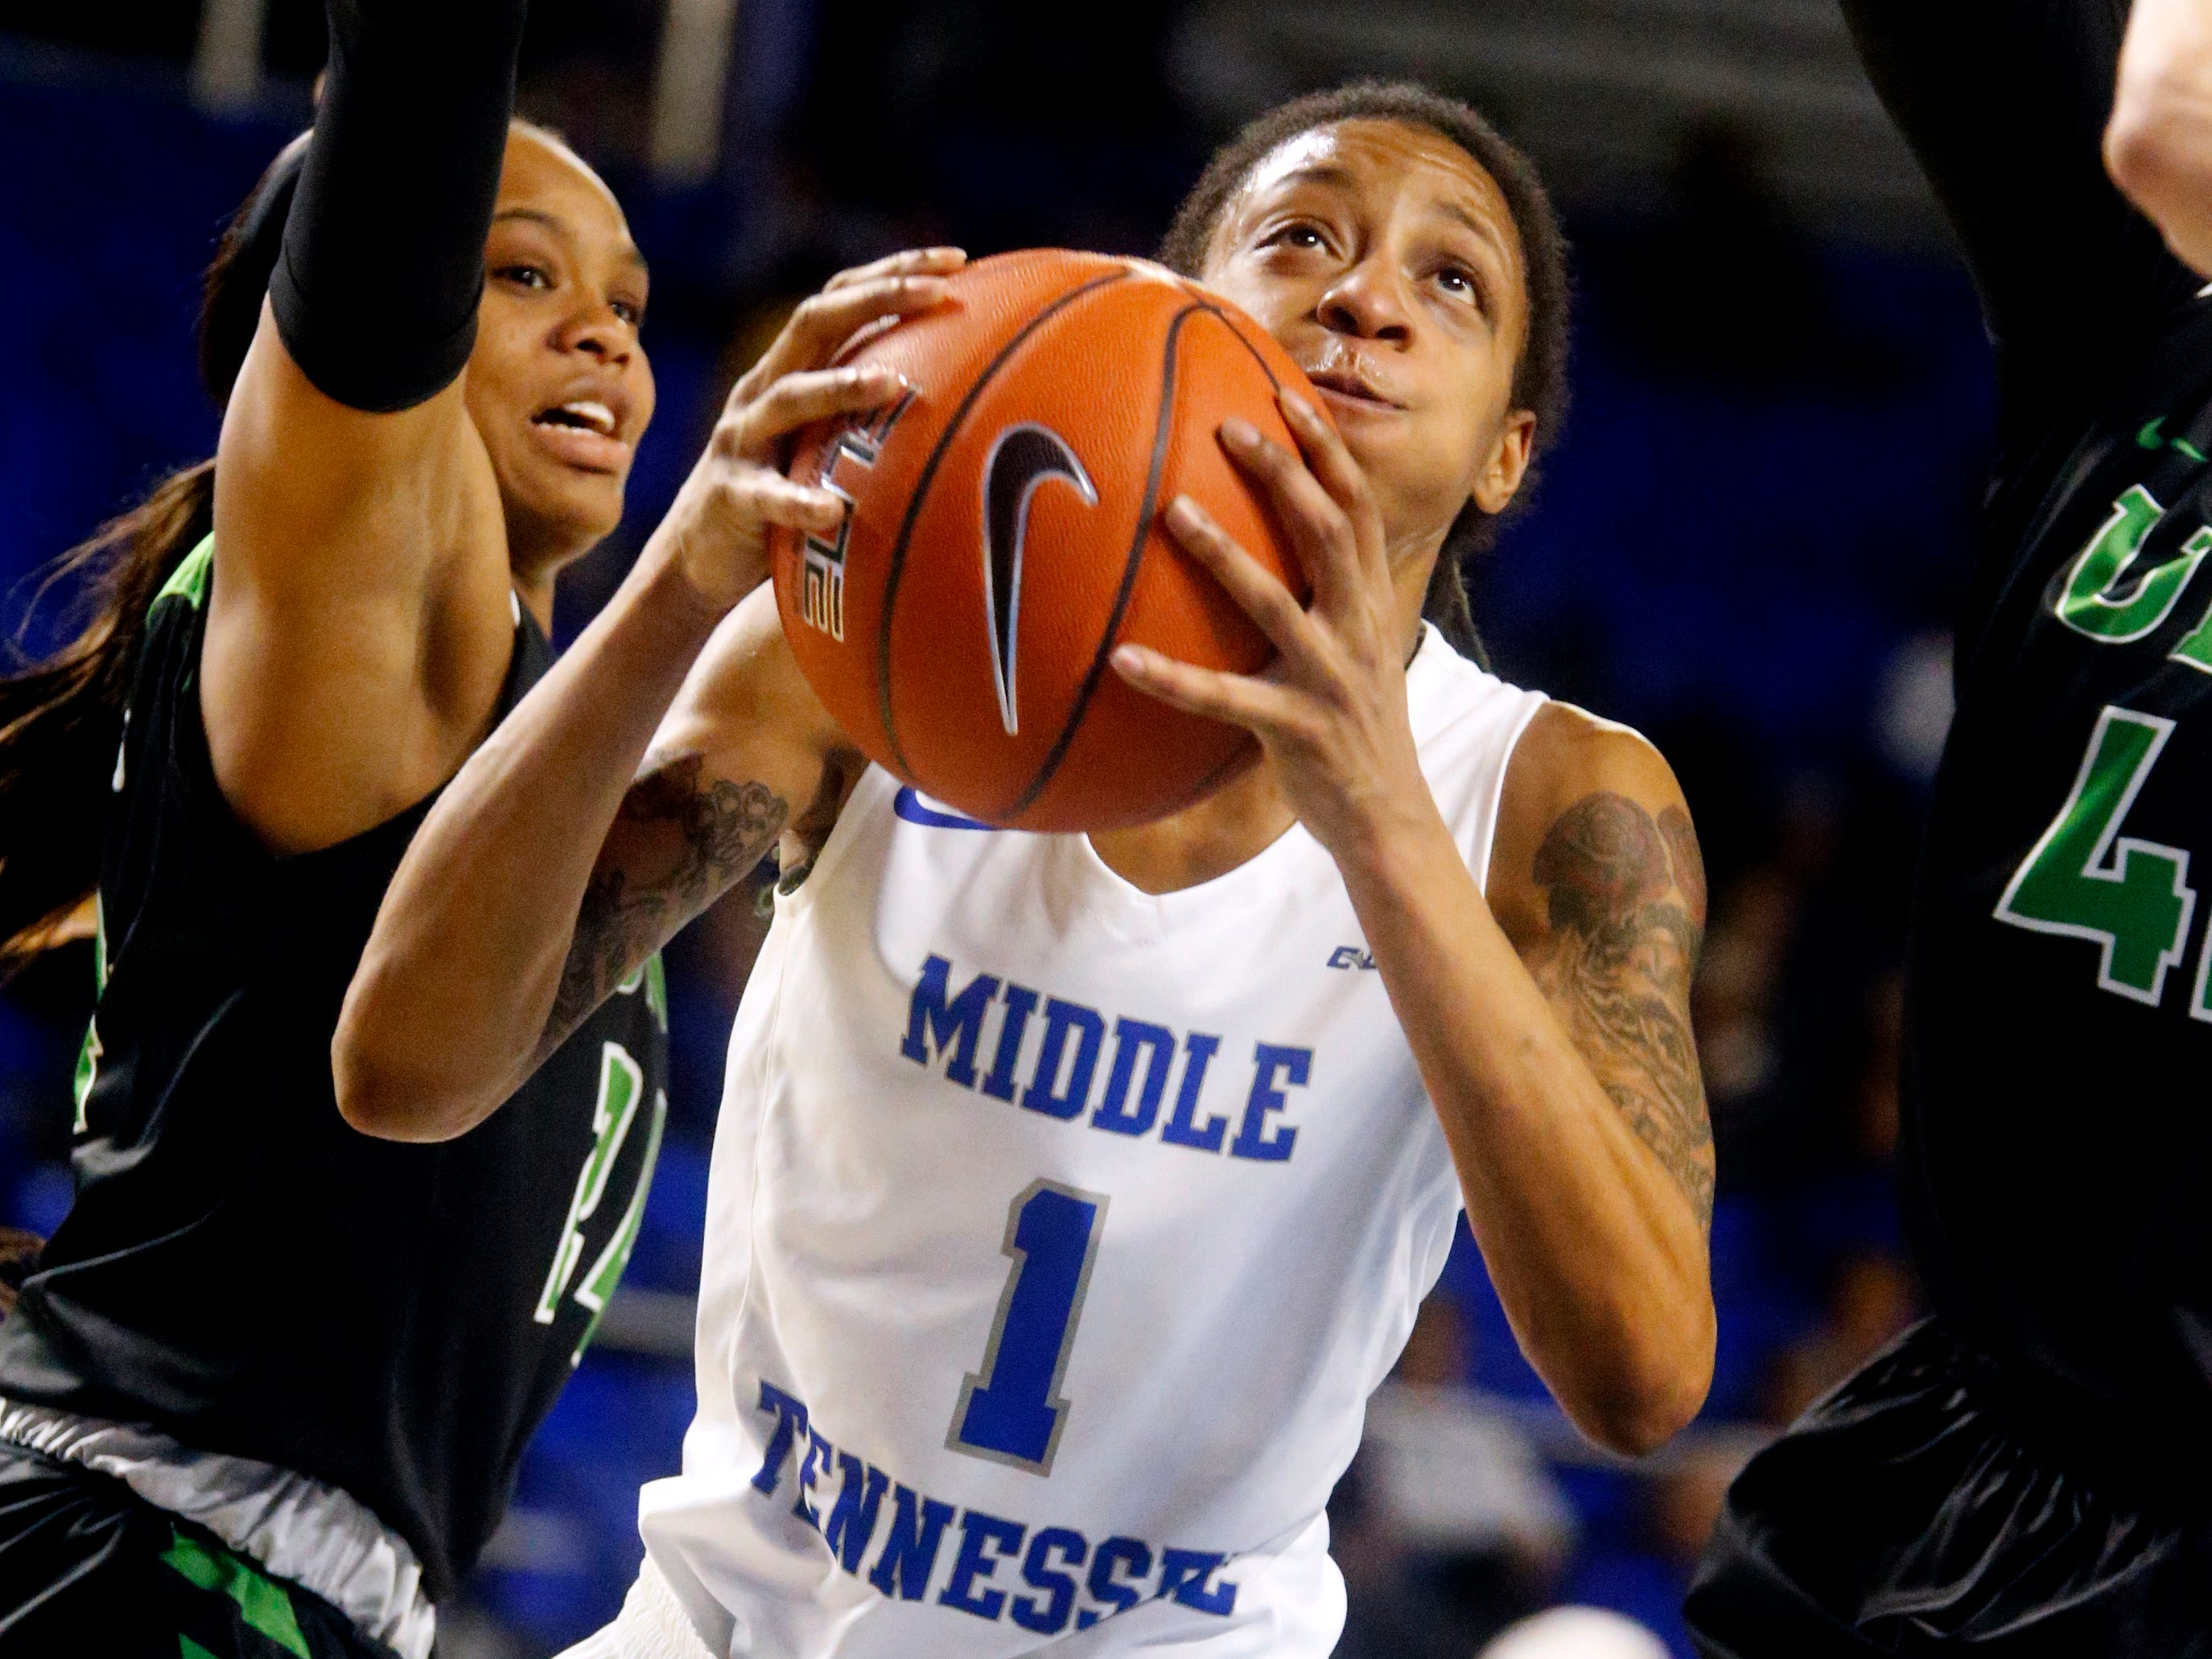 MTSU's guard A'Queen Hayes (1) shoots the ball between North Texas' guard Trena Mims (24) and  North Texas' forward/center Anisha George (42) on Saturday Jan. 26, 2019.